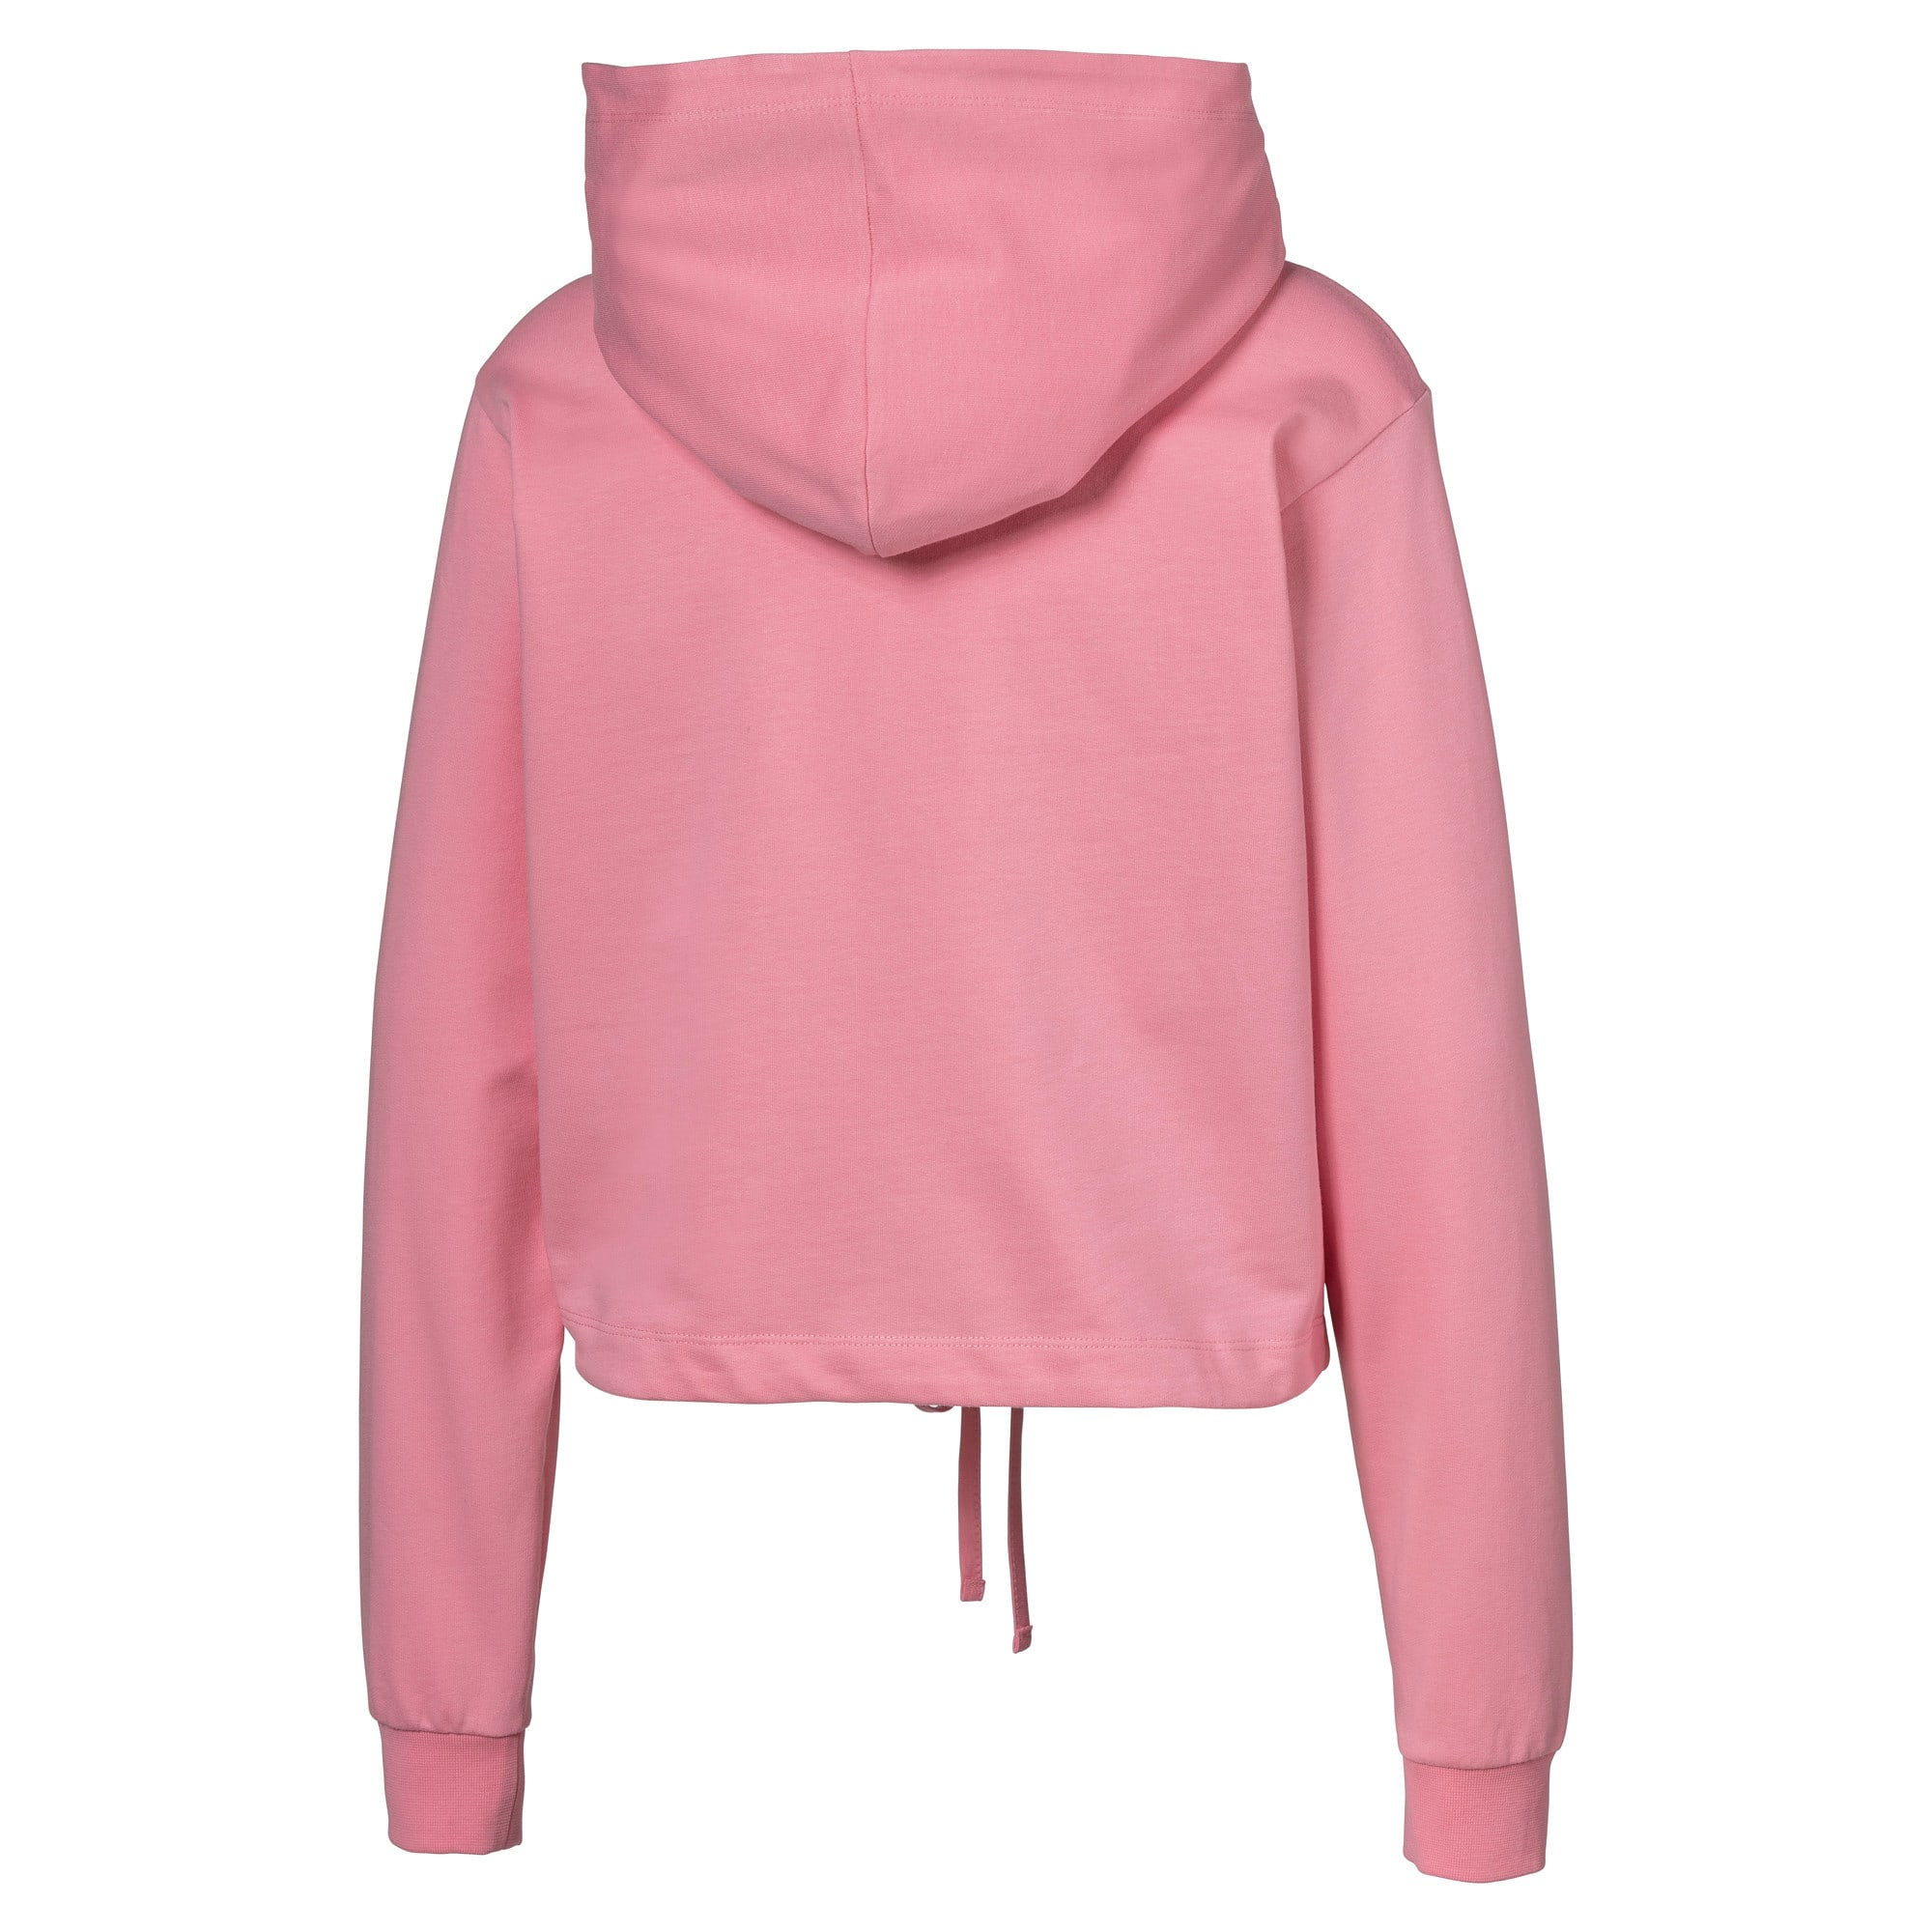 Cropped Women's Hoodie, Peony, large